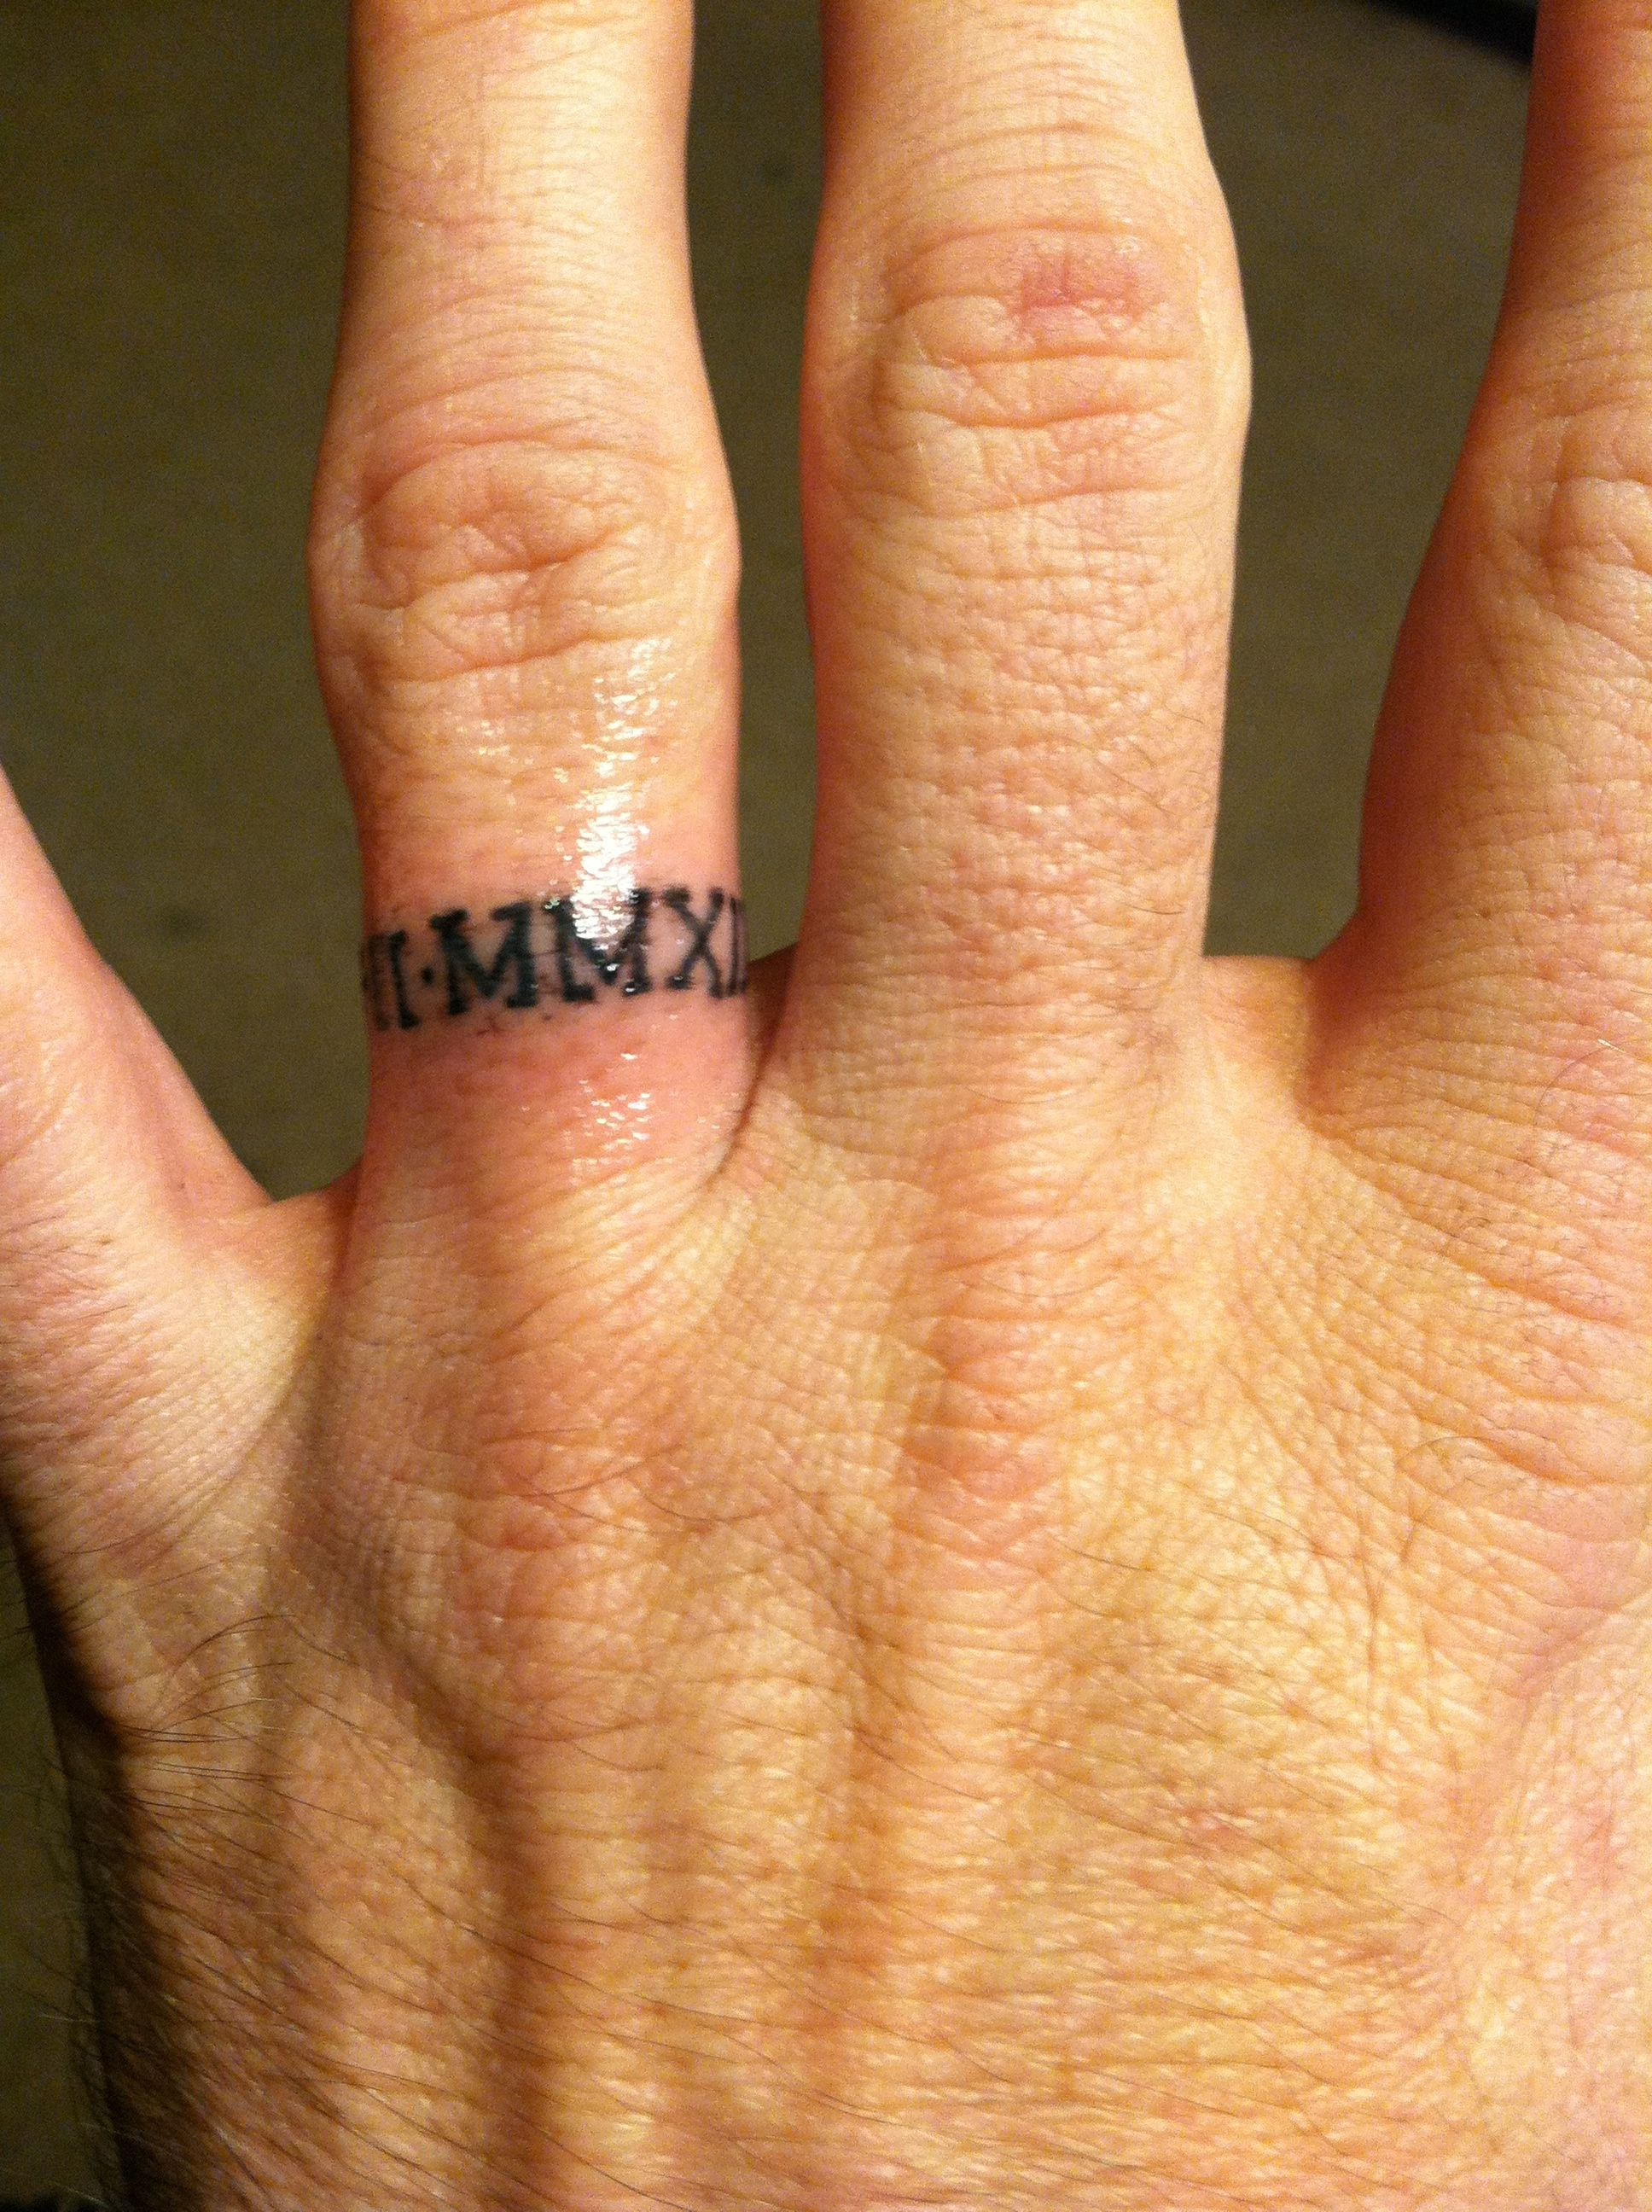 Awesome Tattoo My Husband Got Our Anniversary In Roman Numerals